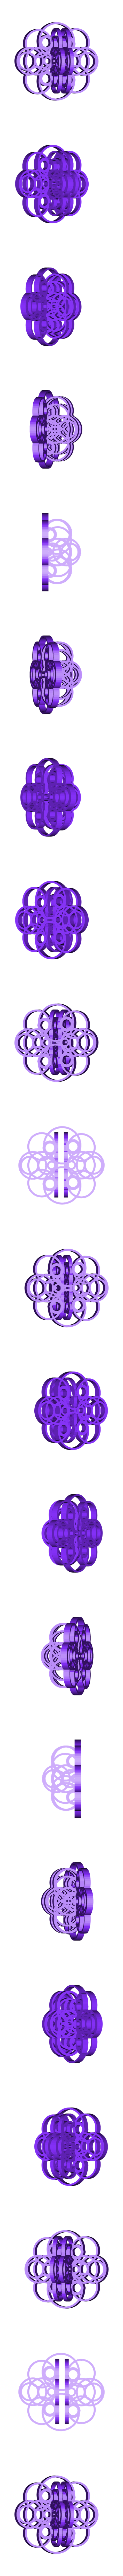 ChristmasTreeFlatCircles_Support.stl Download free STL file Christmast Tree • 3D print template, phipo333